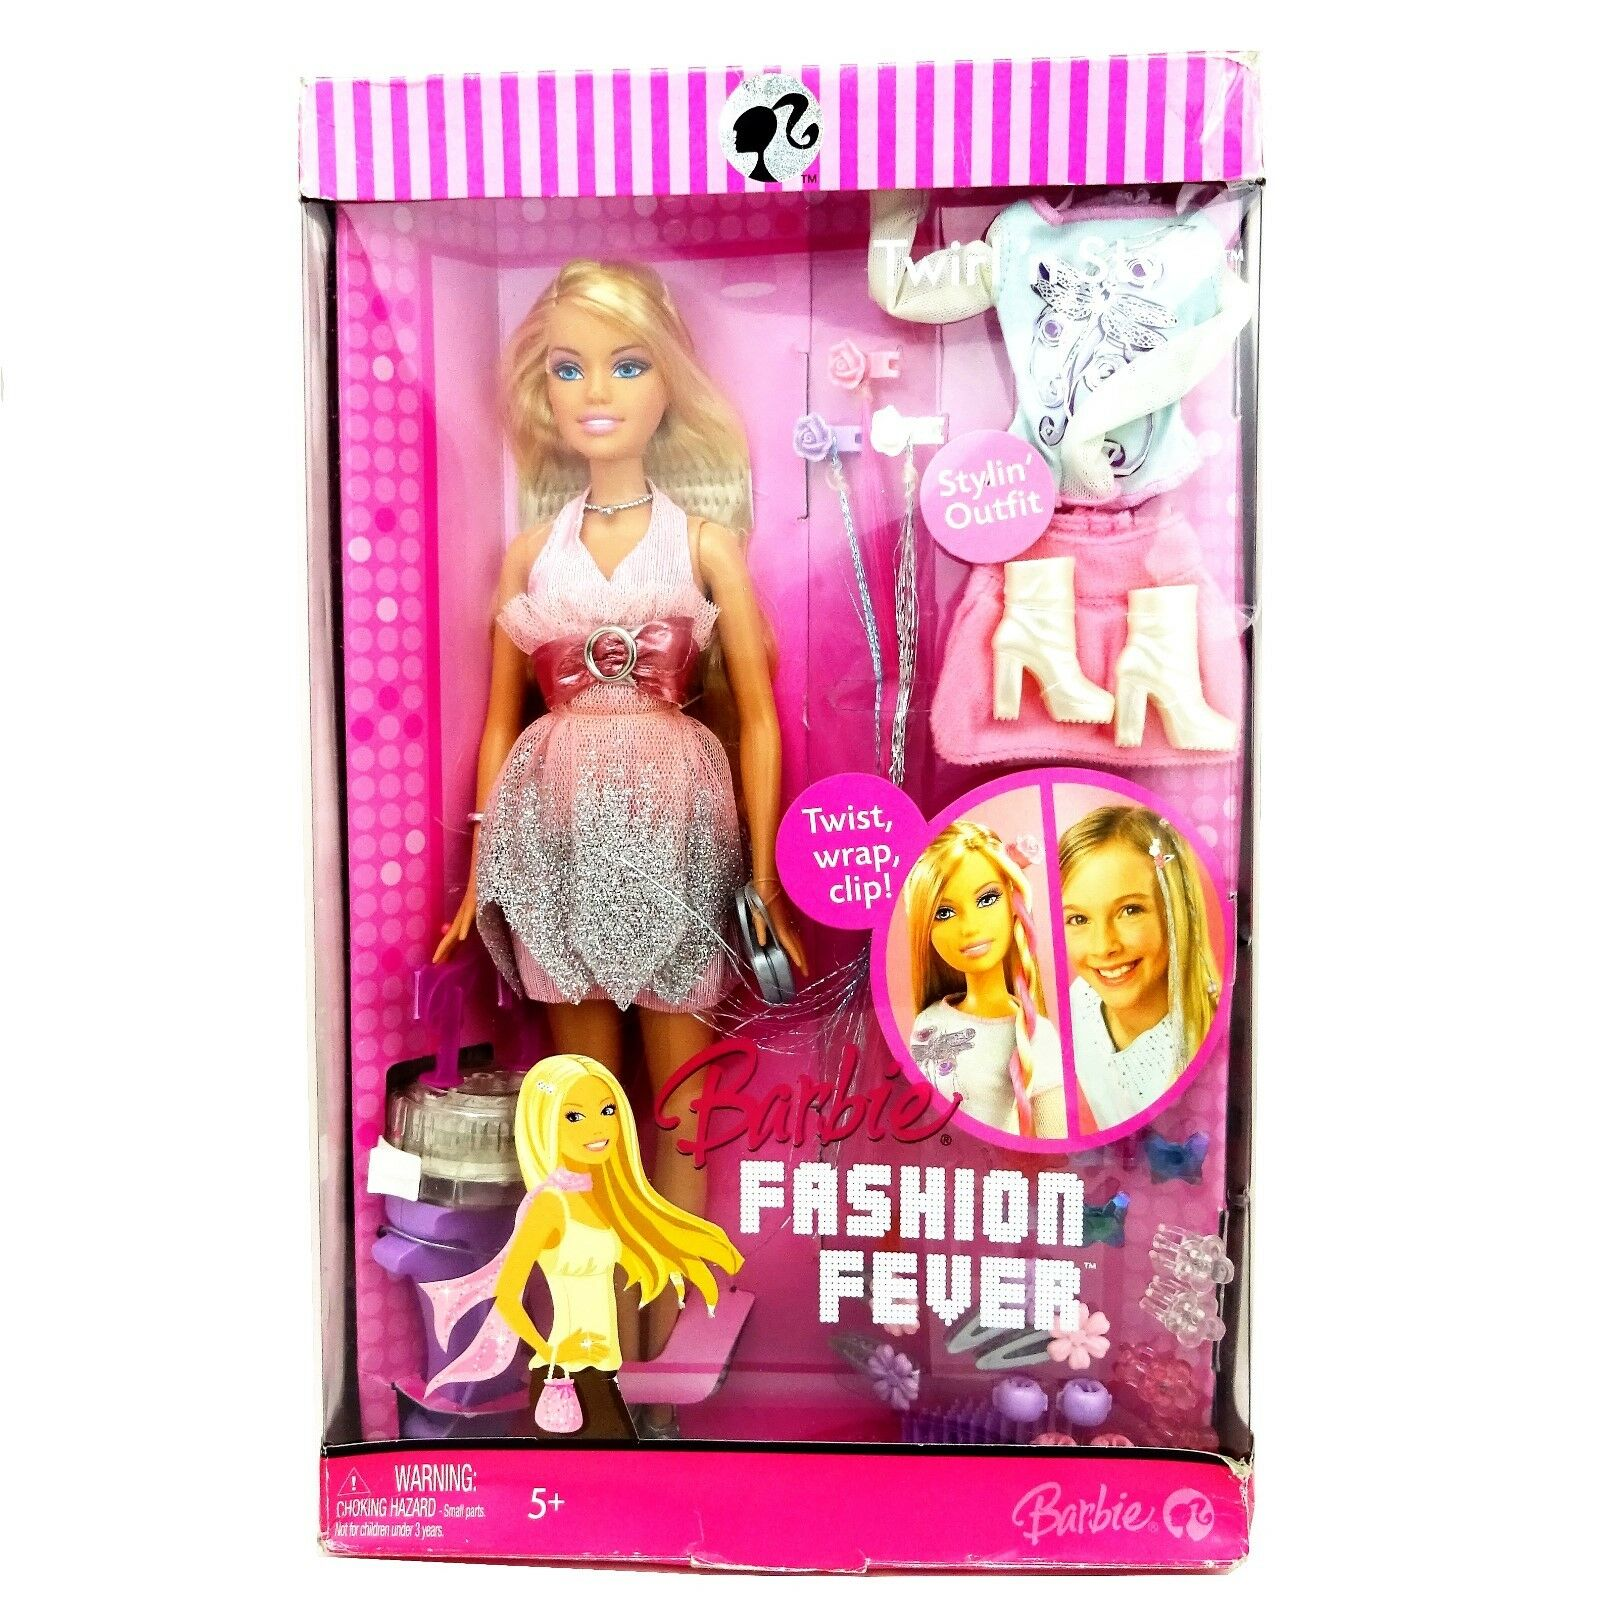 2007 Barbie Fashion Fever Twirl n Style Doll New in Very Worn Box